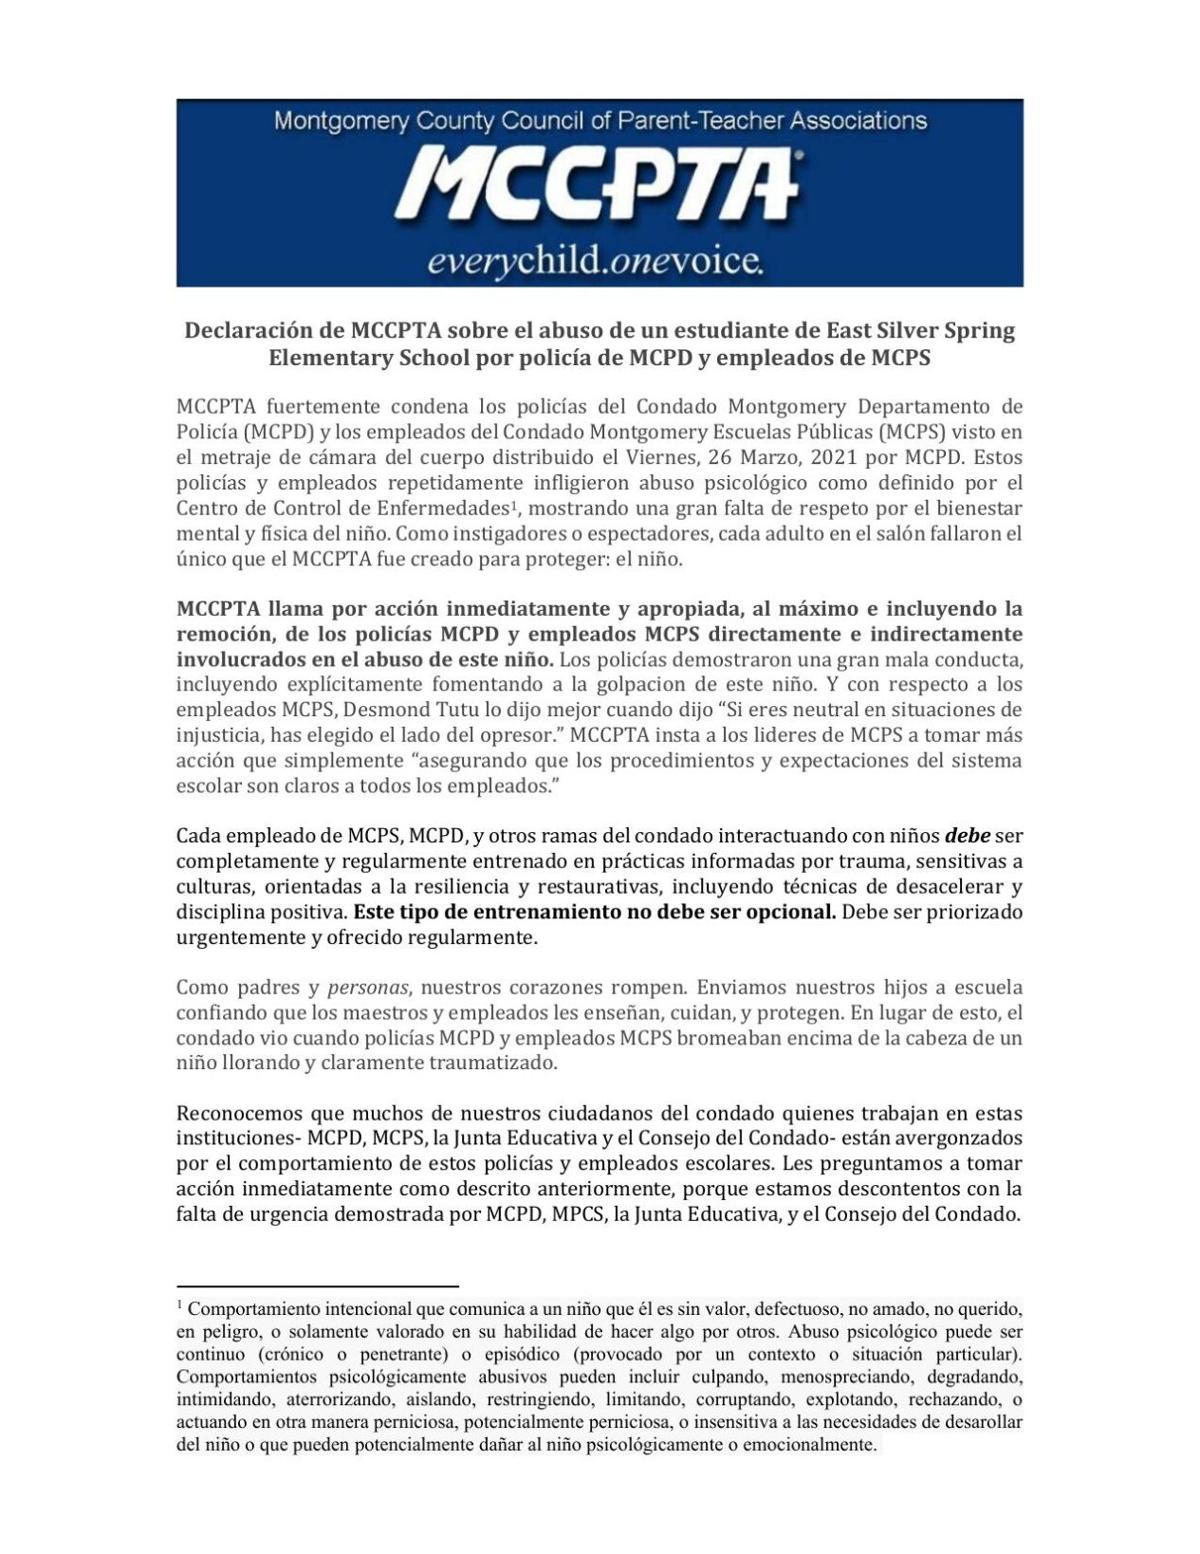 (Español) MCCPTA Statement Regarding the Abuse of East Silver Spring Elementary School Student by MCPD Officers and MCPS Staff